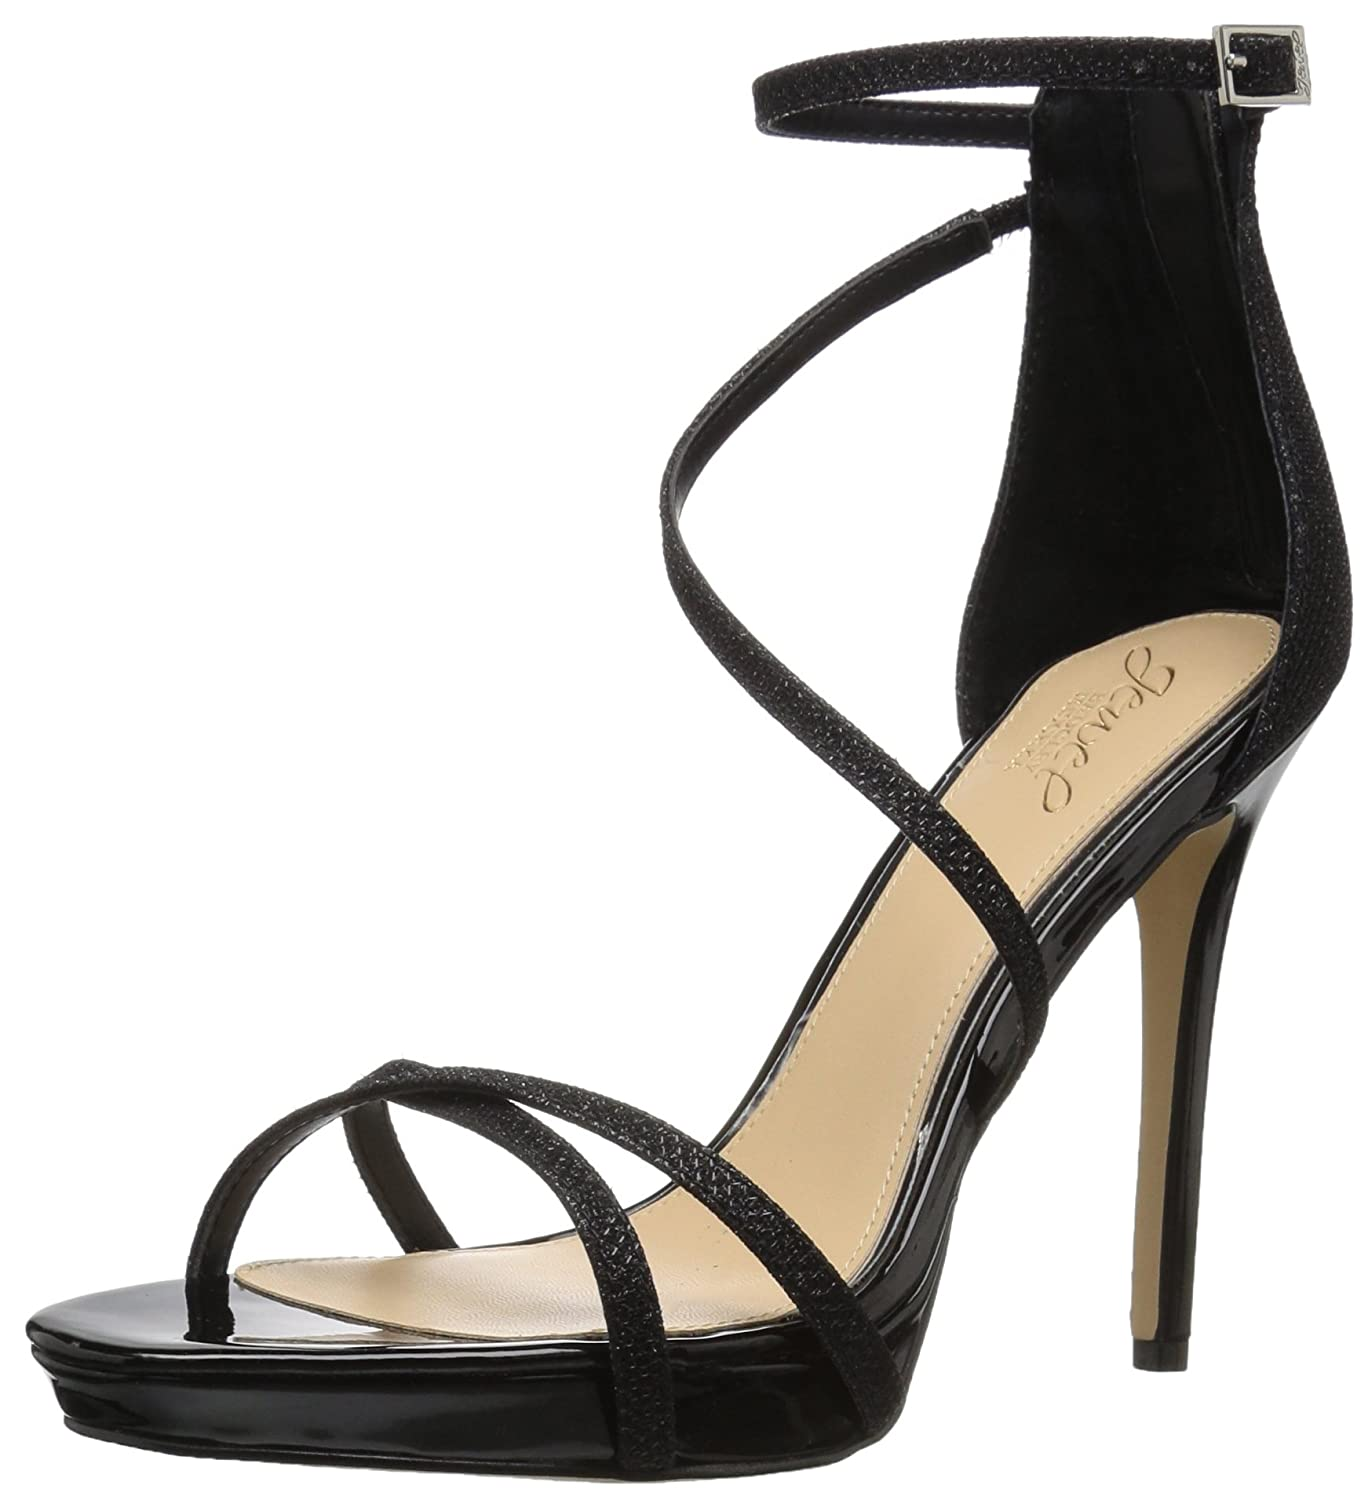 Black Badgley Mischka Womens Galen Heeled Sandal